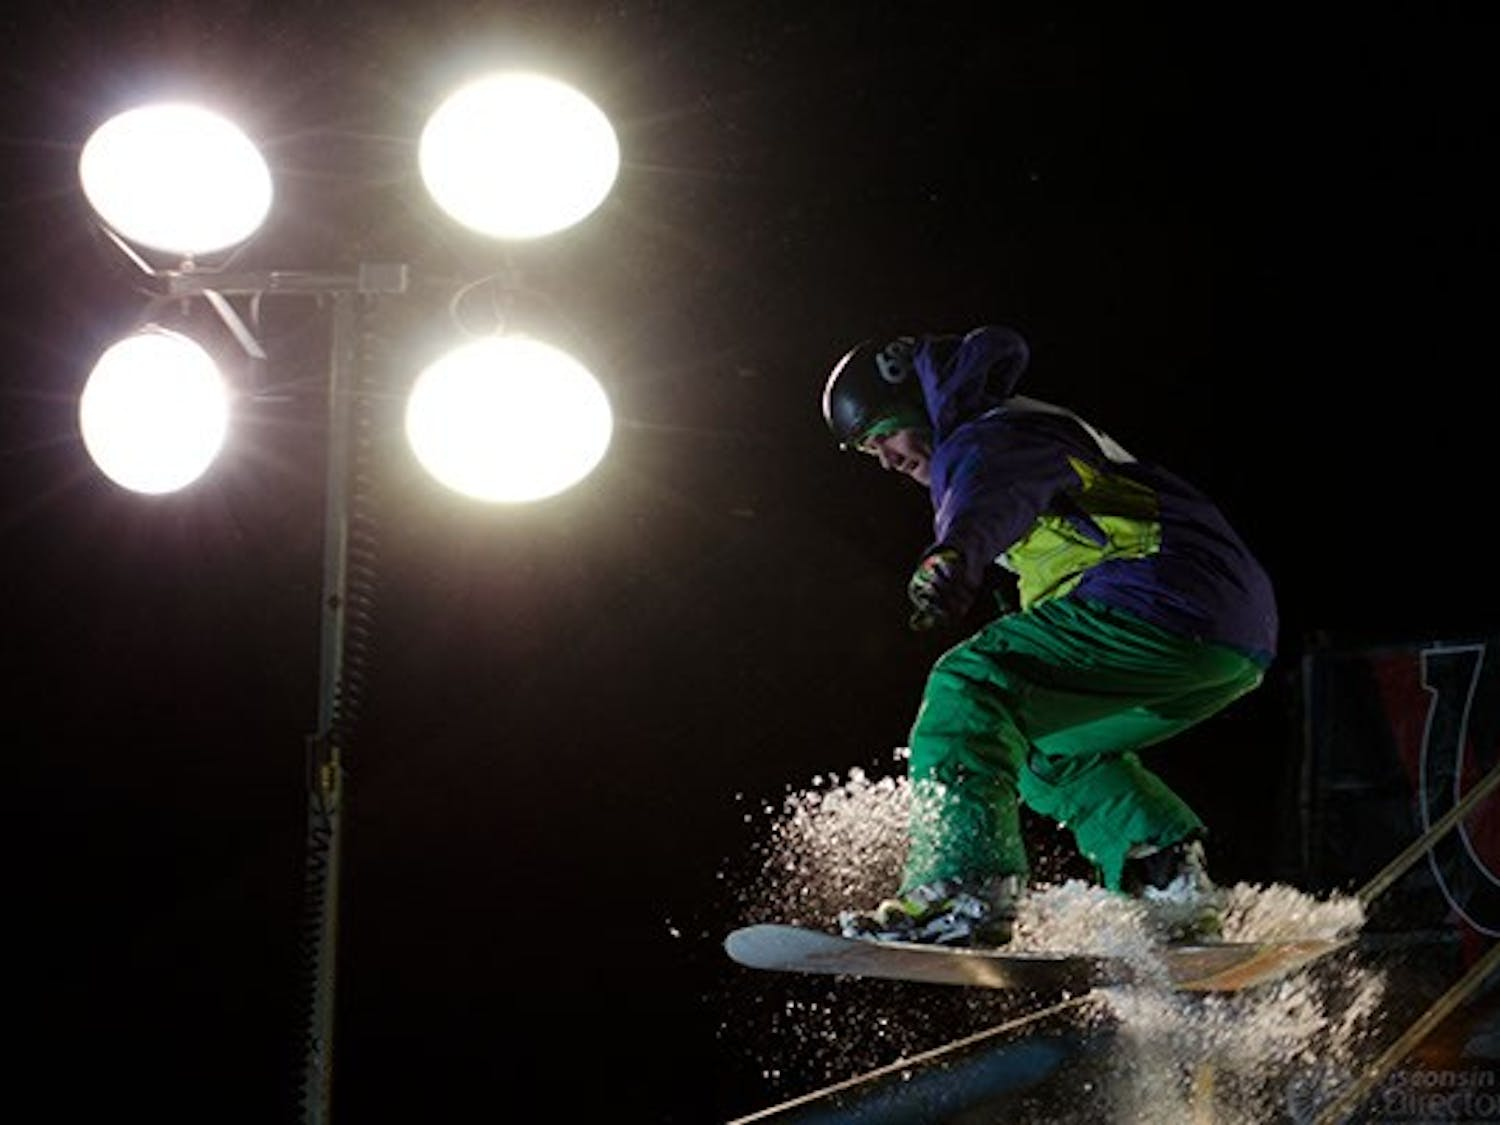 Skiers and snowboarders took to Union South on Thursday night to compete in the 3rd annual Rail Jam sponsored by Hoofer Ski and Snowboard and area businesses including Focus Boardshop.